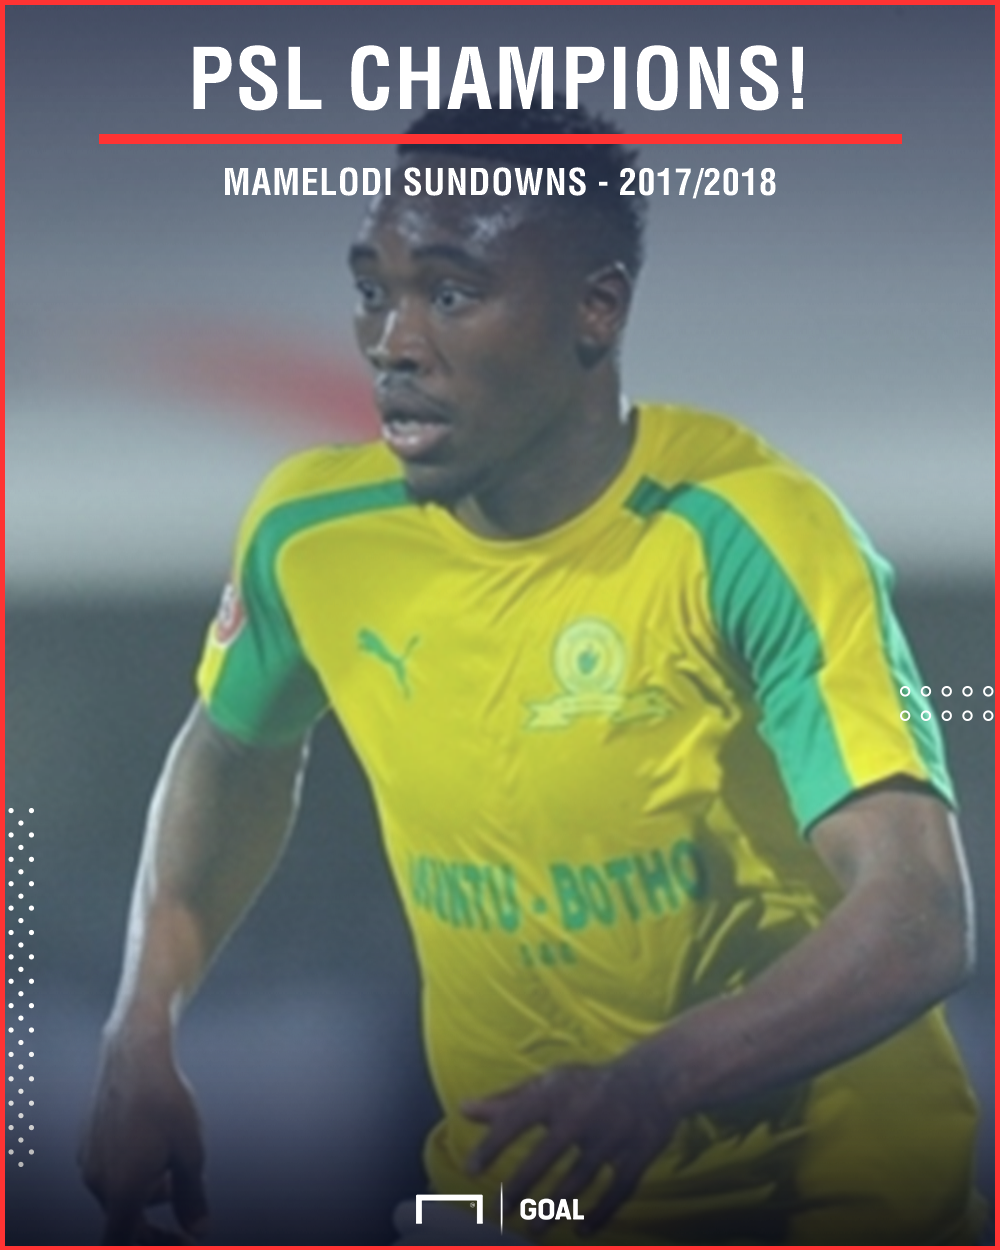 Mamelodi Sundowns PS